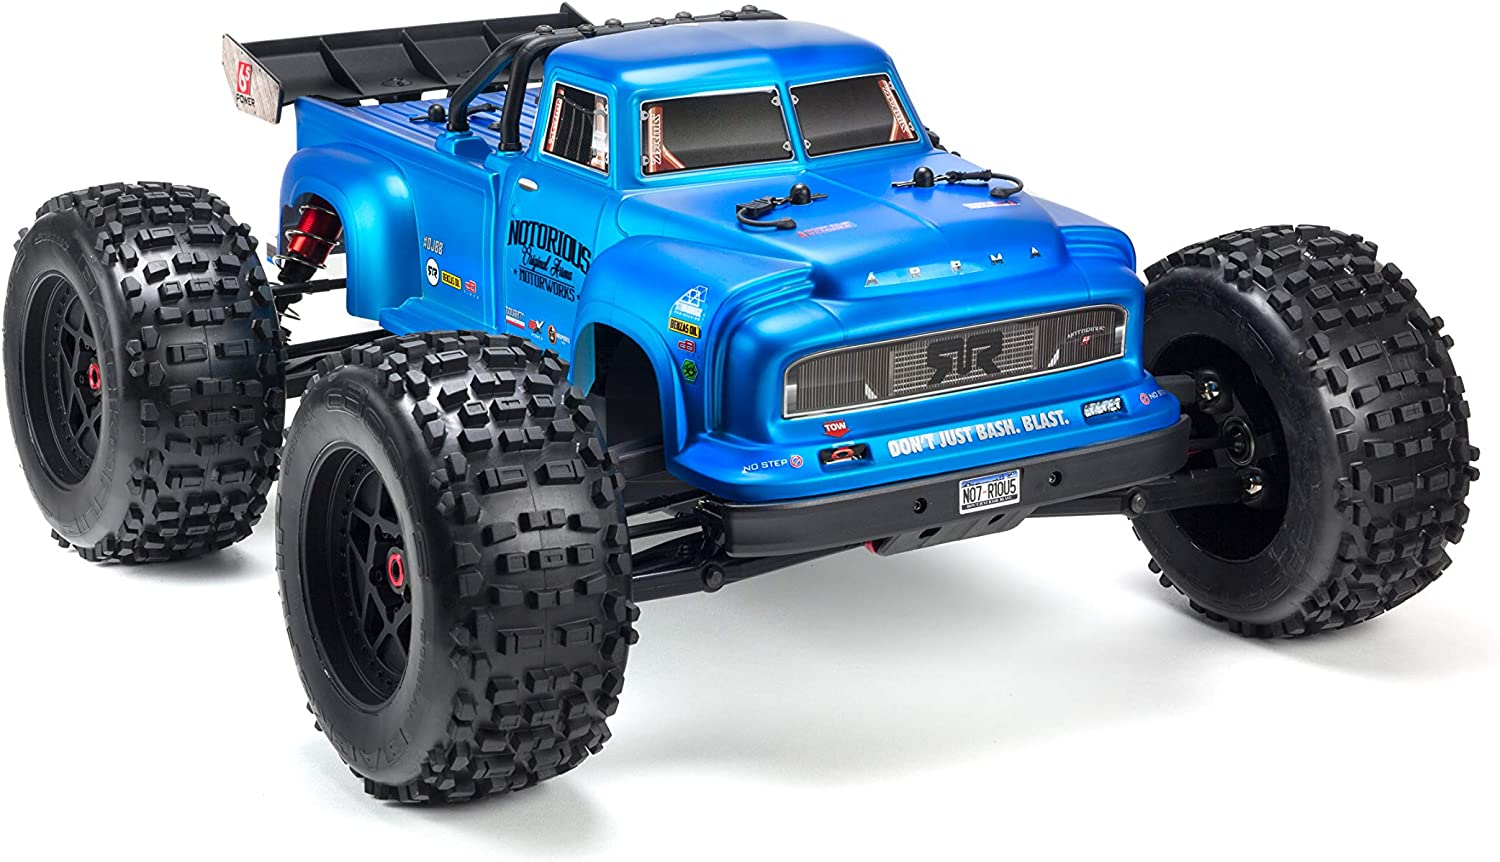 Amazon Com Arrma Notorious 1 8 Scale Blx Brushless 4wd Rc Stunt Truck Rtr 6s Lipo Battery Required With 2 4ghz Stx2 Radio Ara106044t2 Blue Toys Games